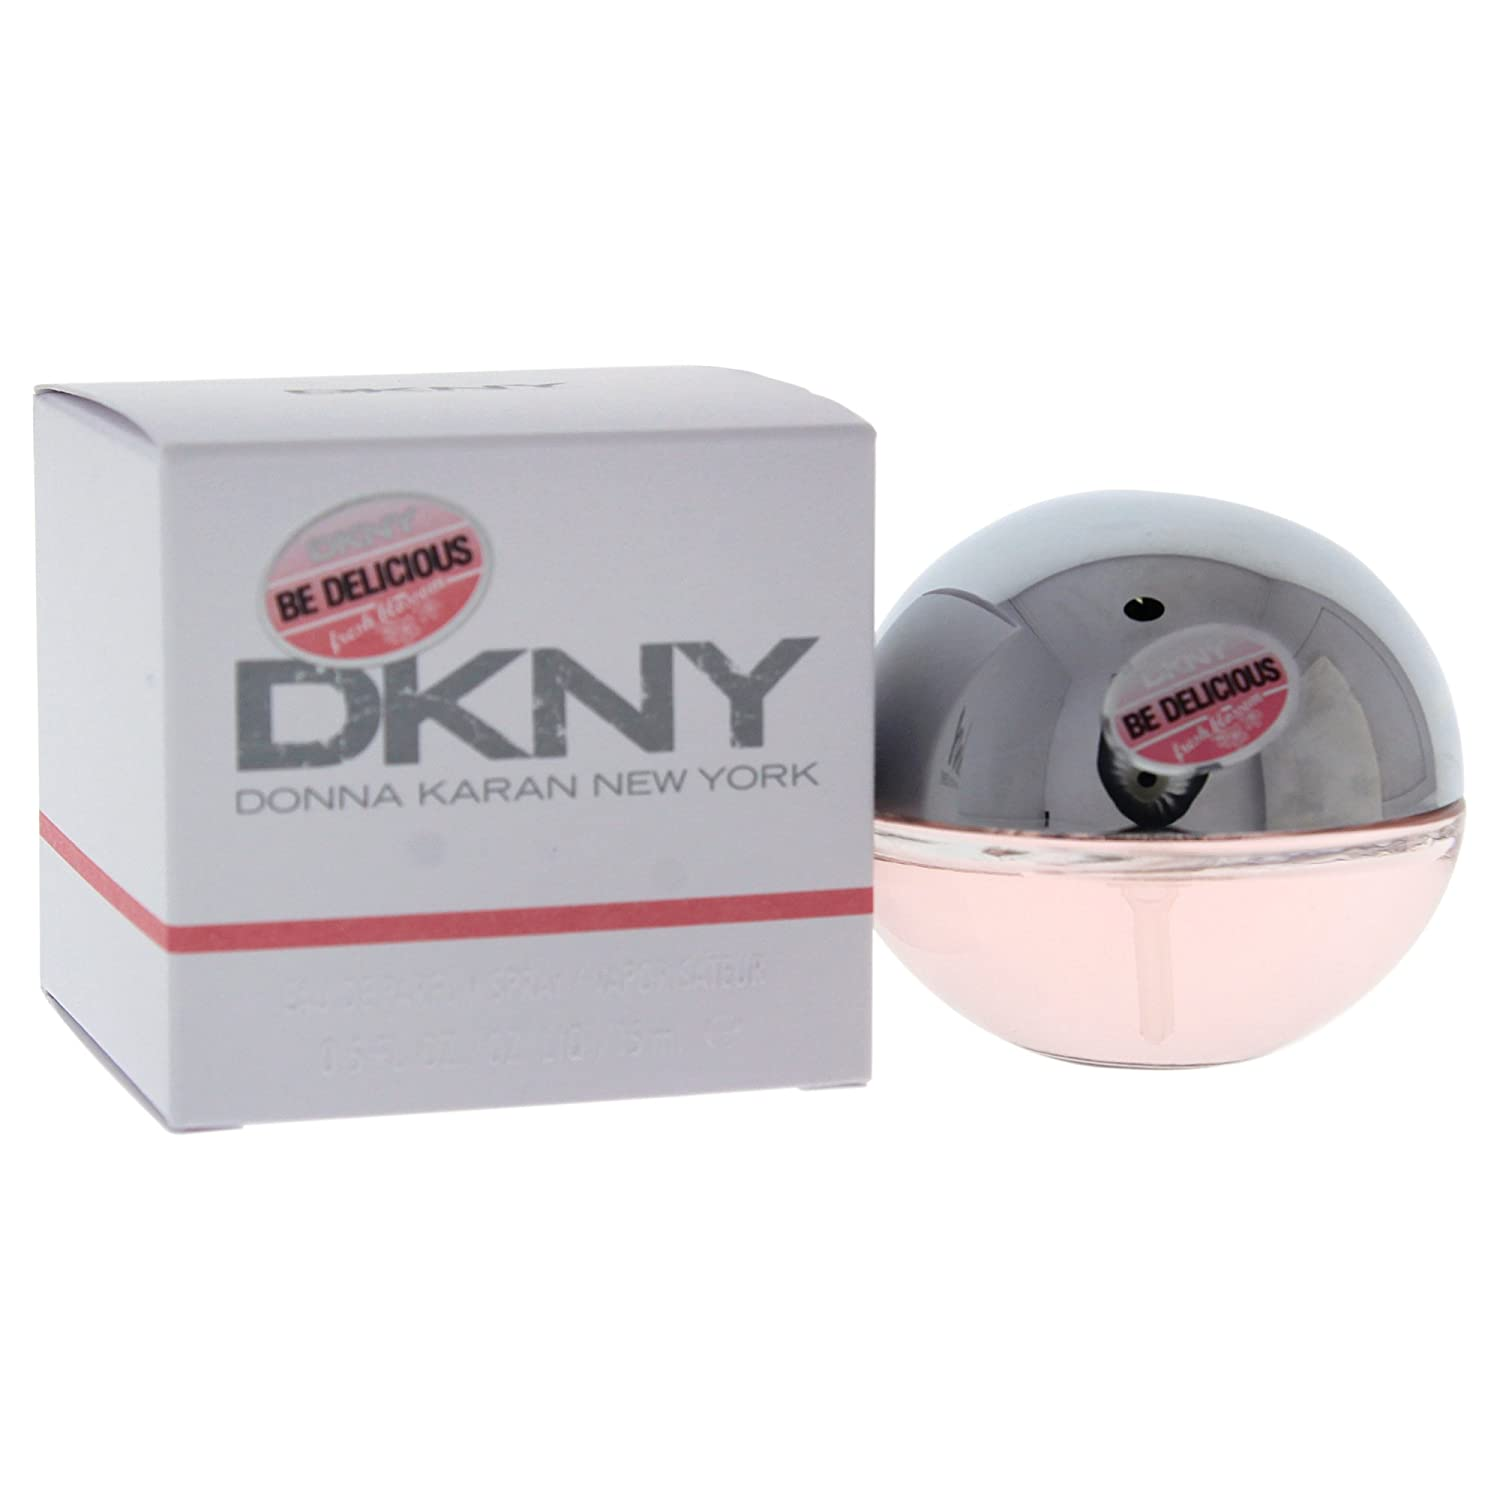 Donna Karan DKNY Be Delicious Eau de Parfum Spray for Women, Fresh Blossom, 0.5 Ounce